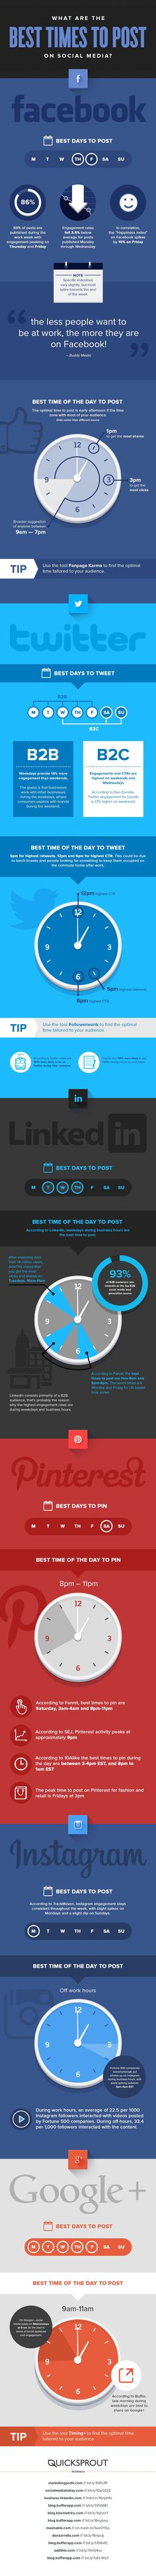 The Best Times to Post on Social Media #infographics